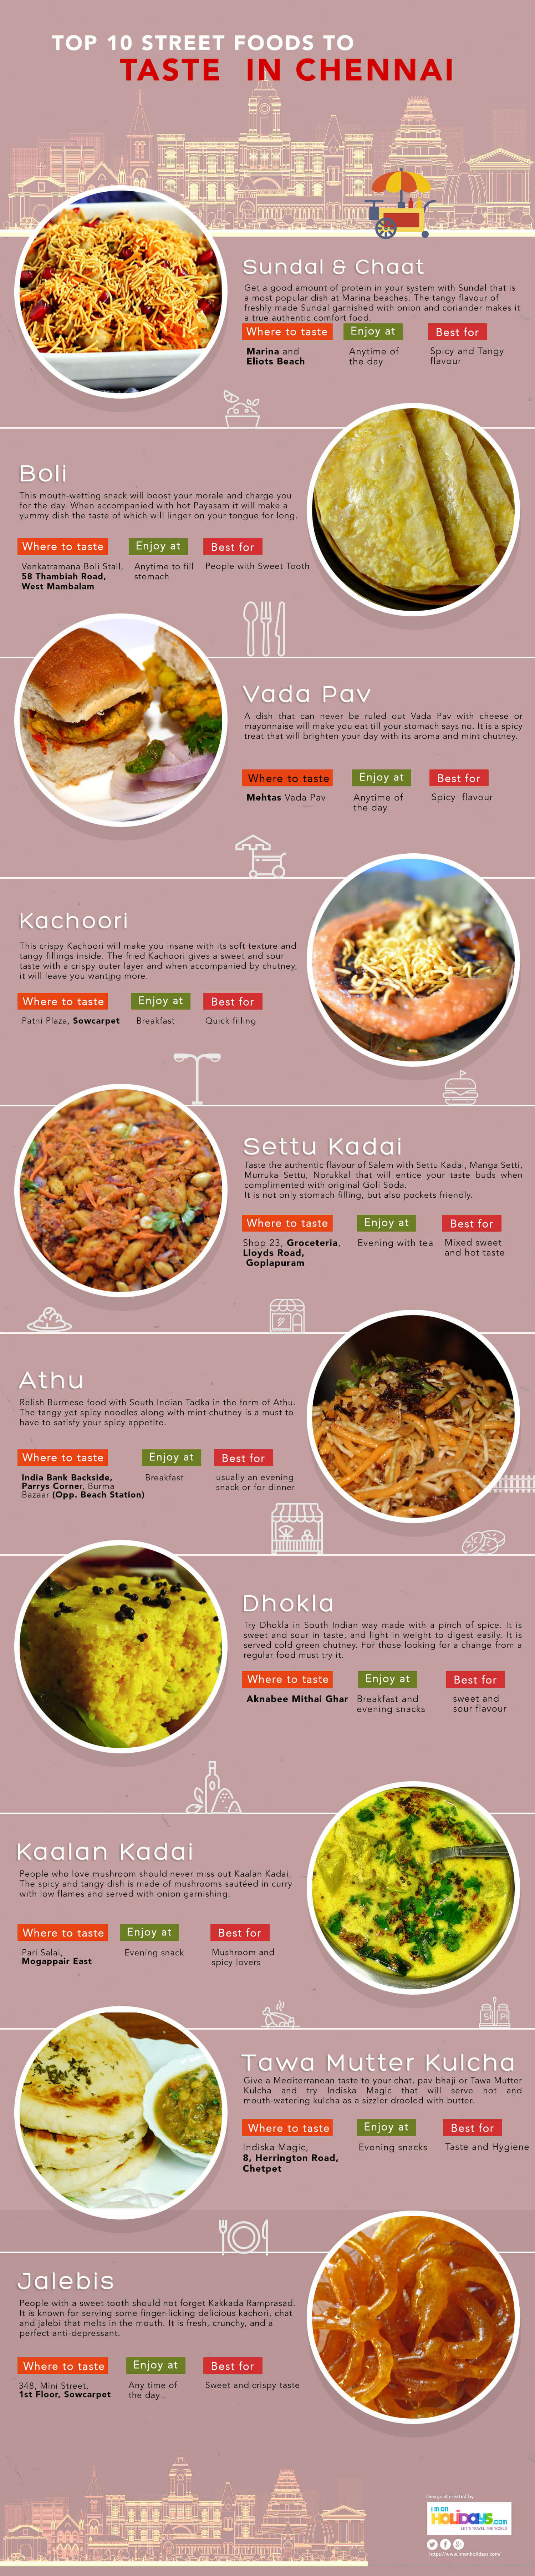 Top 10 Street Foods to Taste in Chennai  Infographic